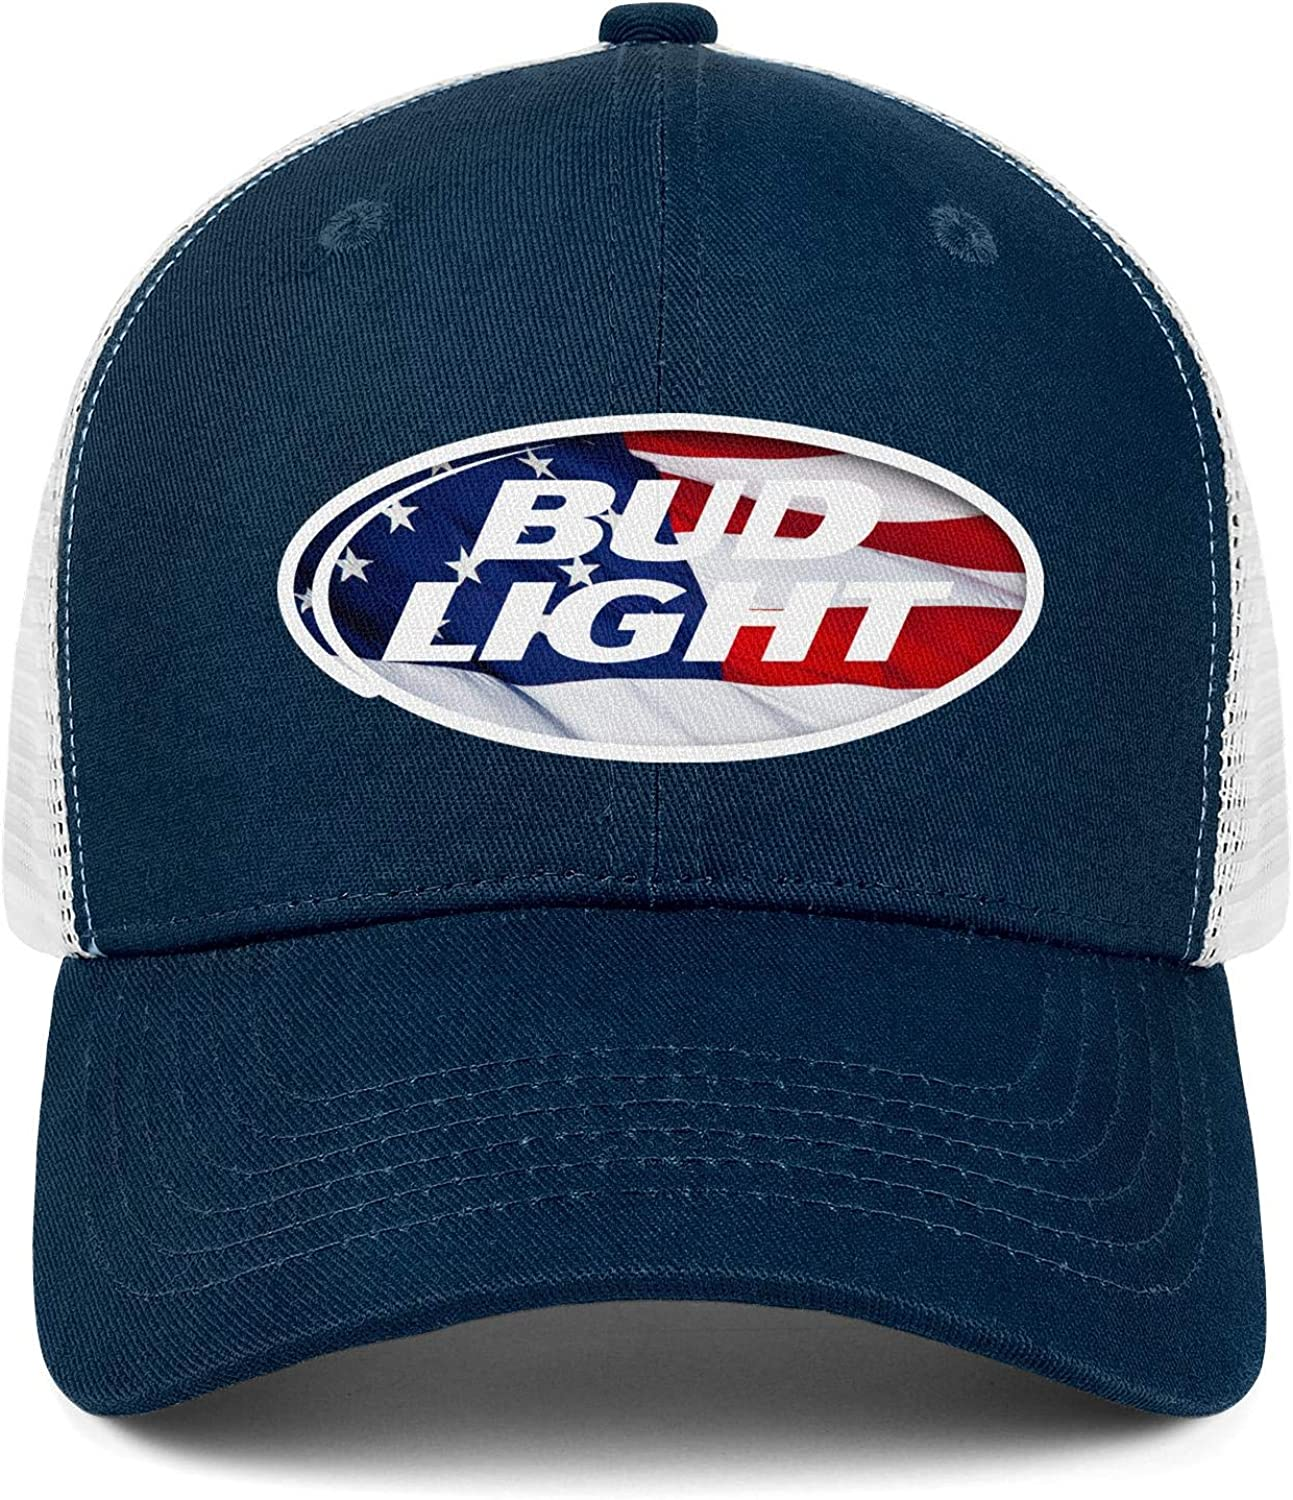 Men Unisex Adjustable Busch-Bud-Light-Beer-United-States-Sterescopic-American-Flag-White-Baseball Cap Outdoor Flat Hats